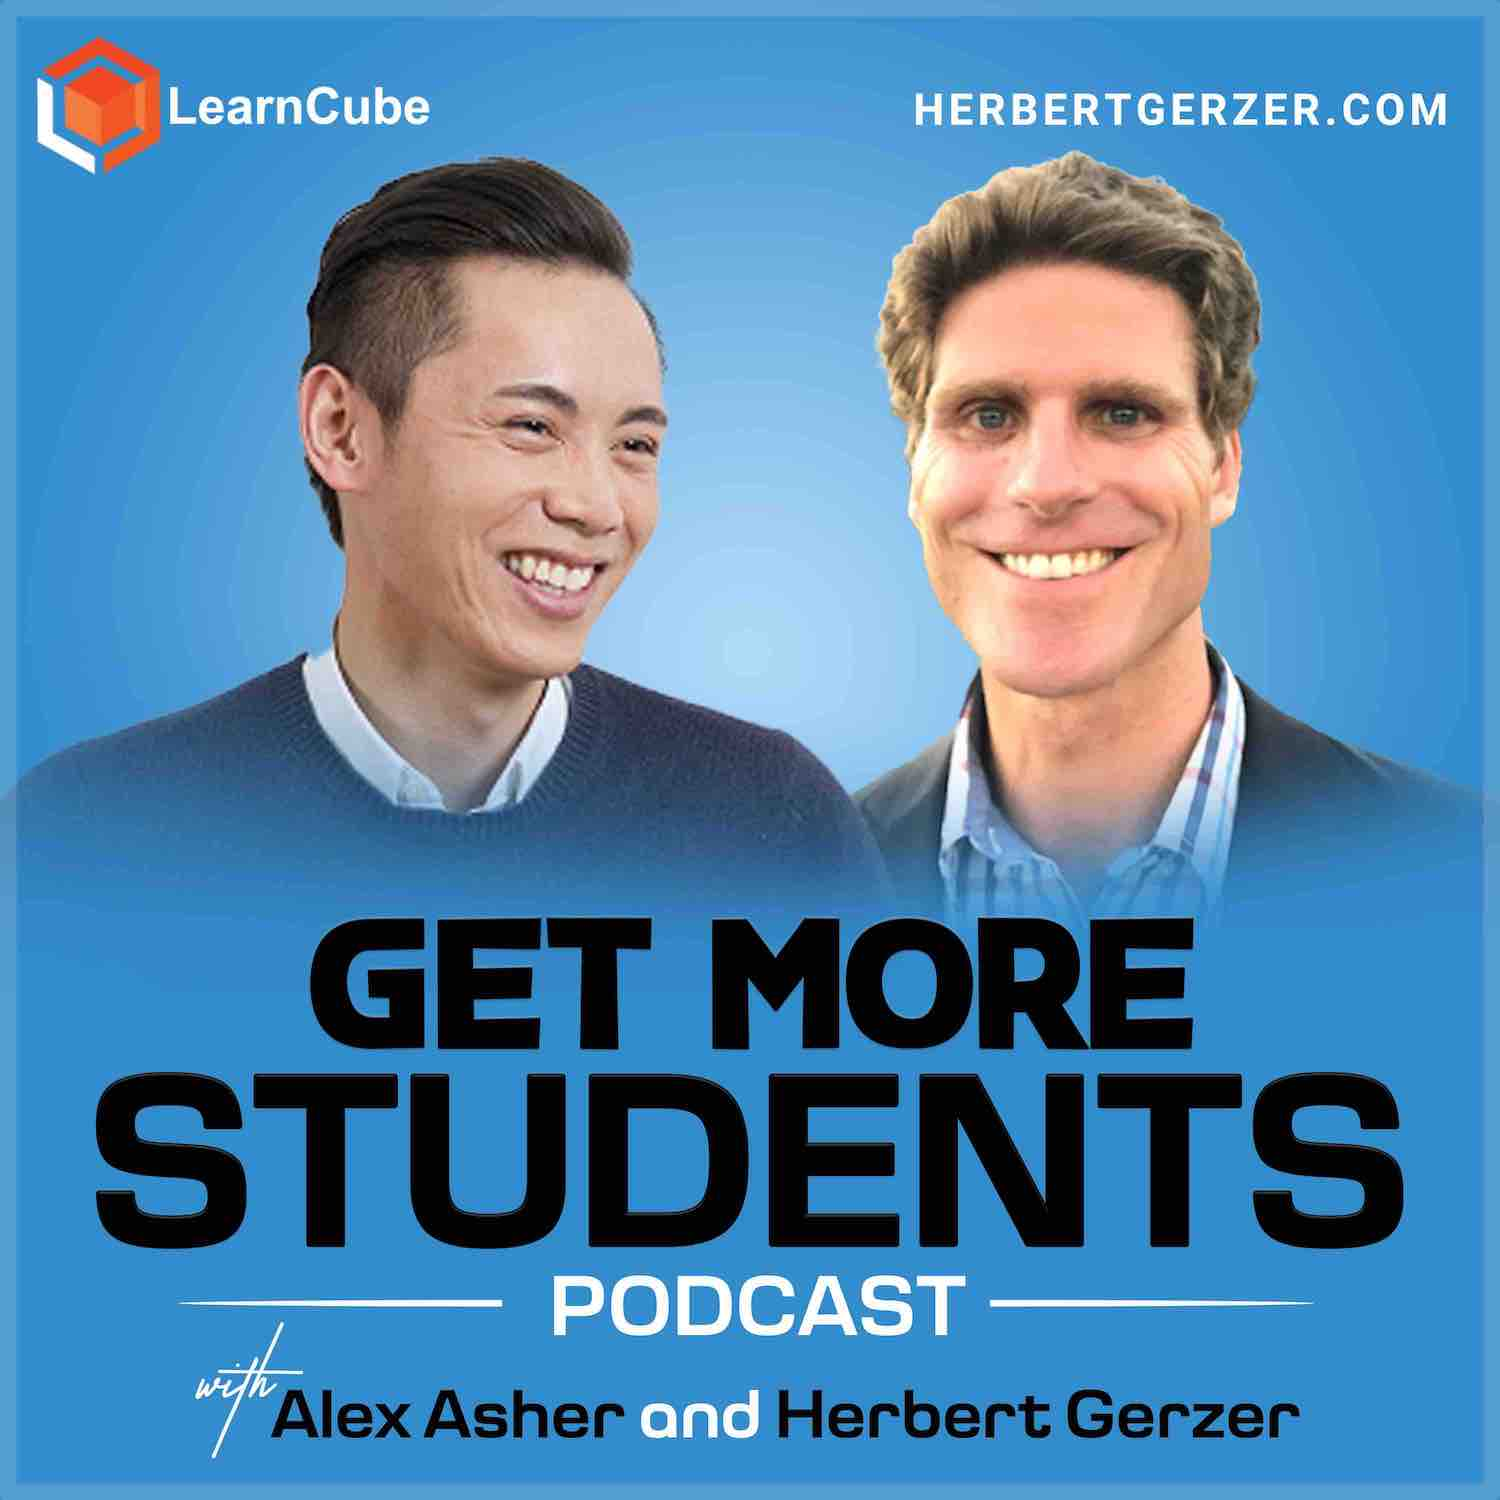 Get More Students podcast show image